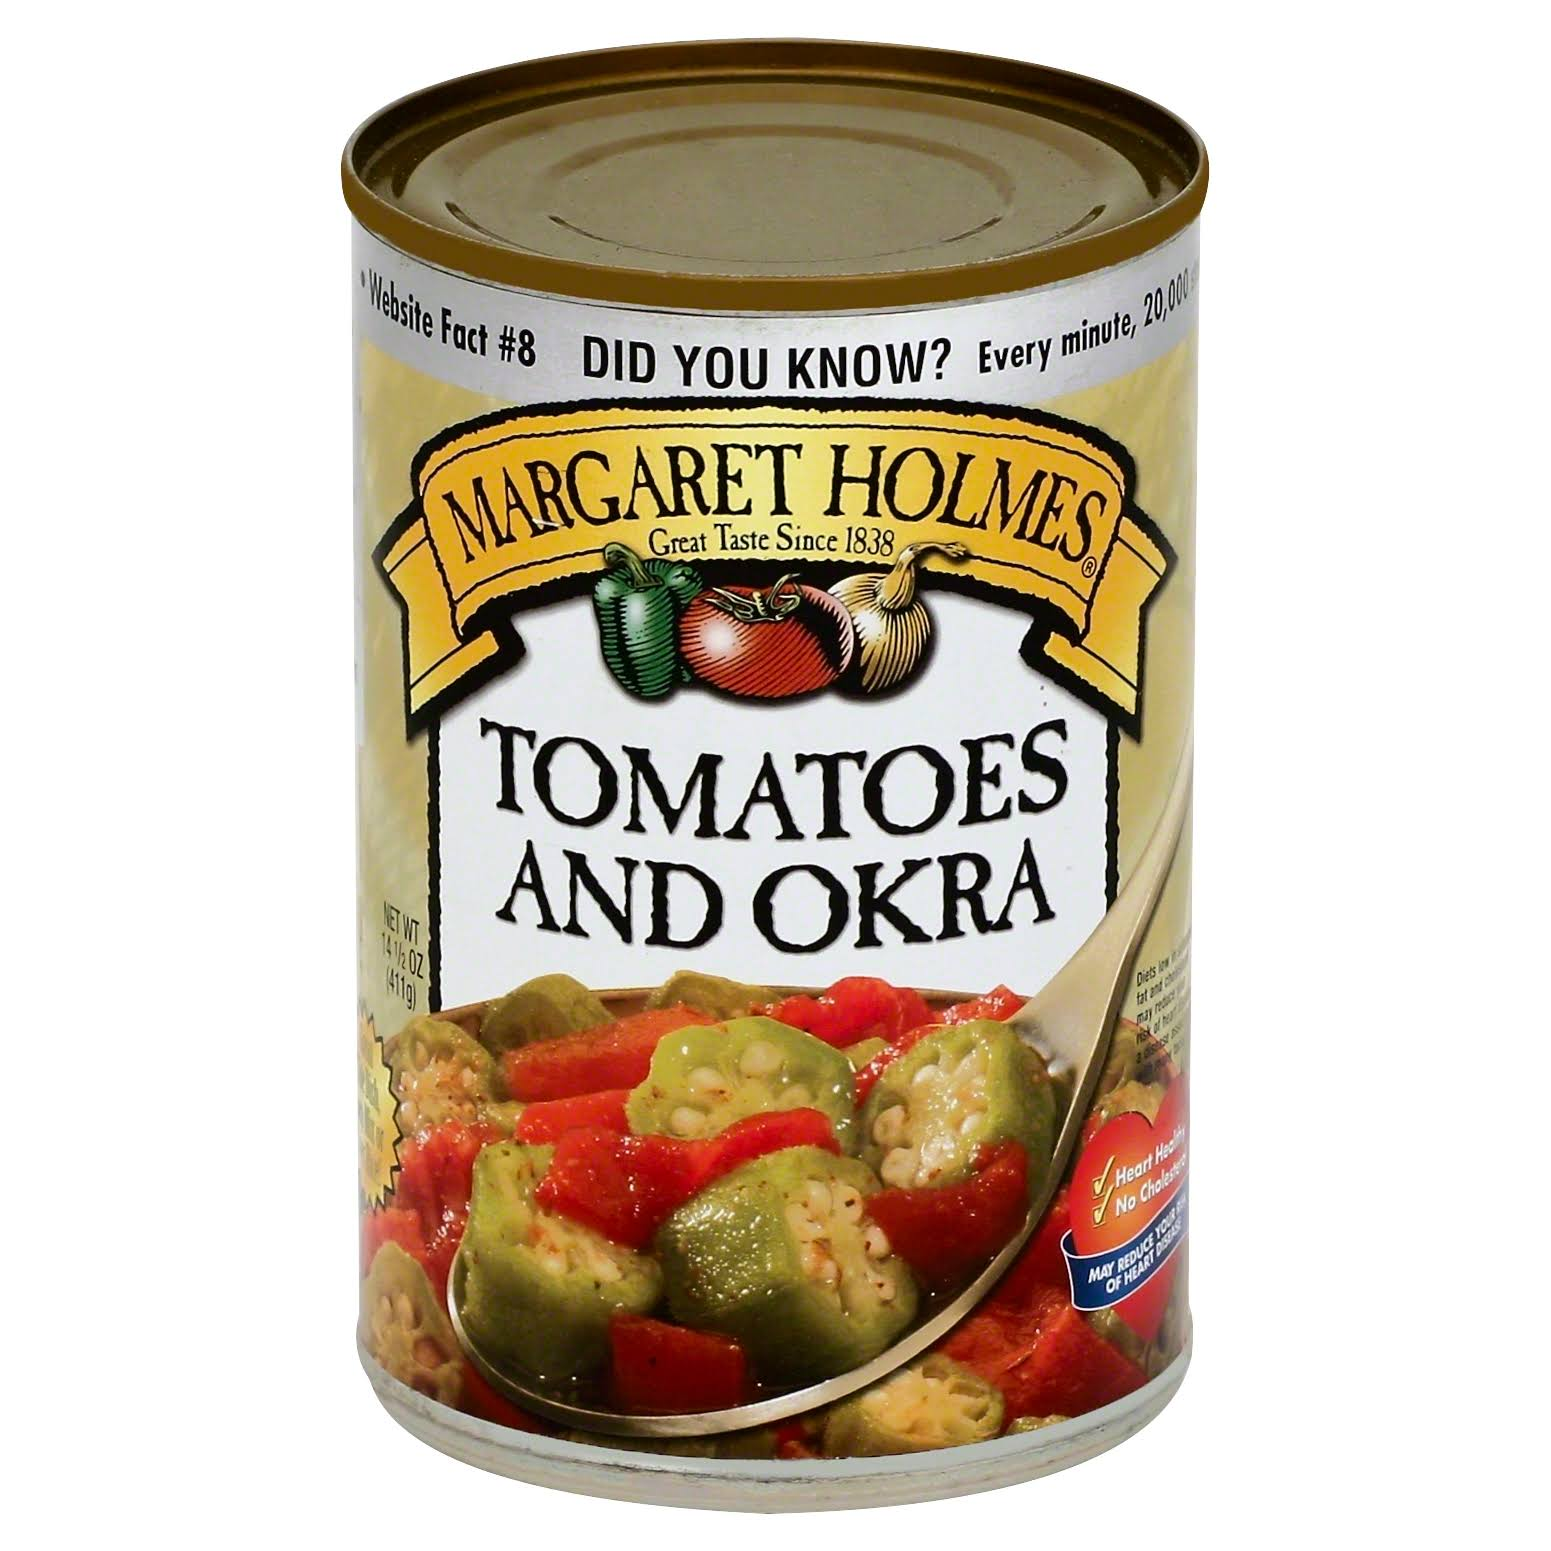 Margaret Holmes Tomatoes and Okra - 14.5 oz